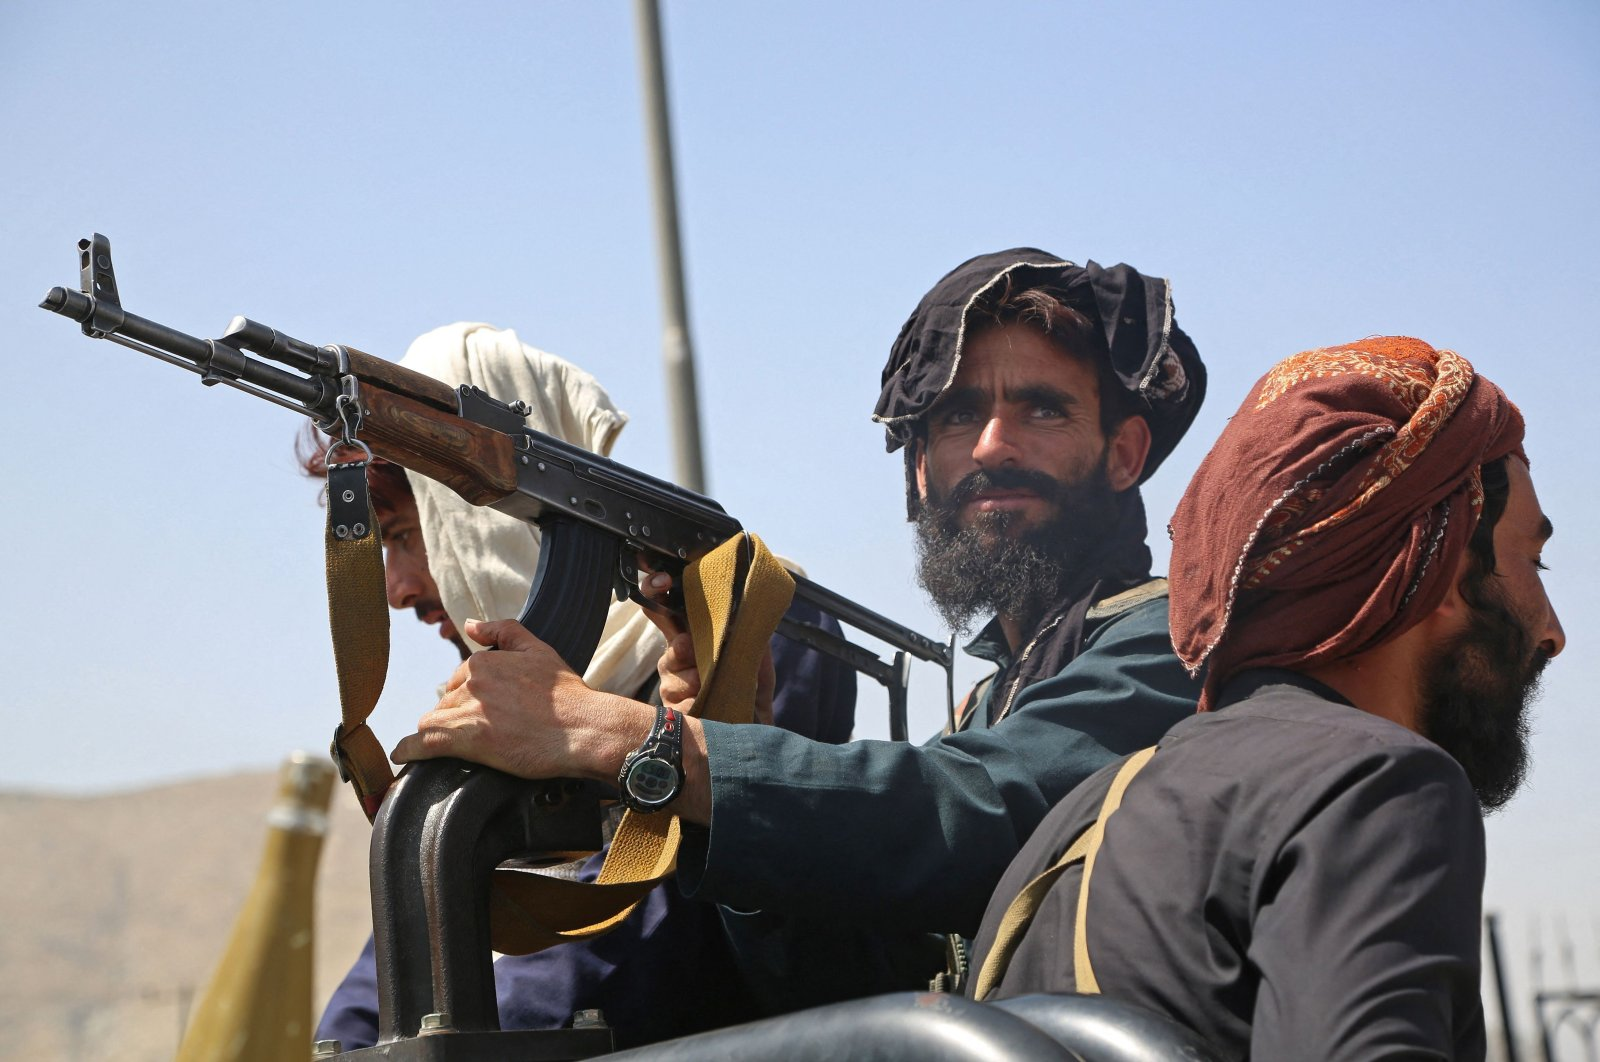 Taliban fighters stand guard in a vehicle along the roadside in Kabul, Afghanistan, Aug. 16, 2021. (AFP Photo)